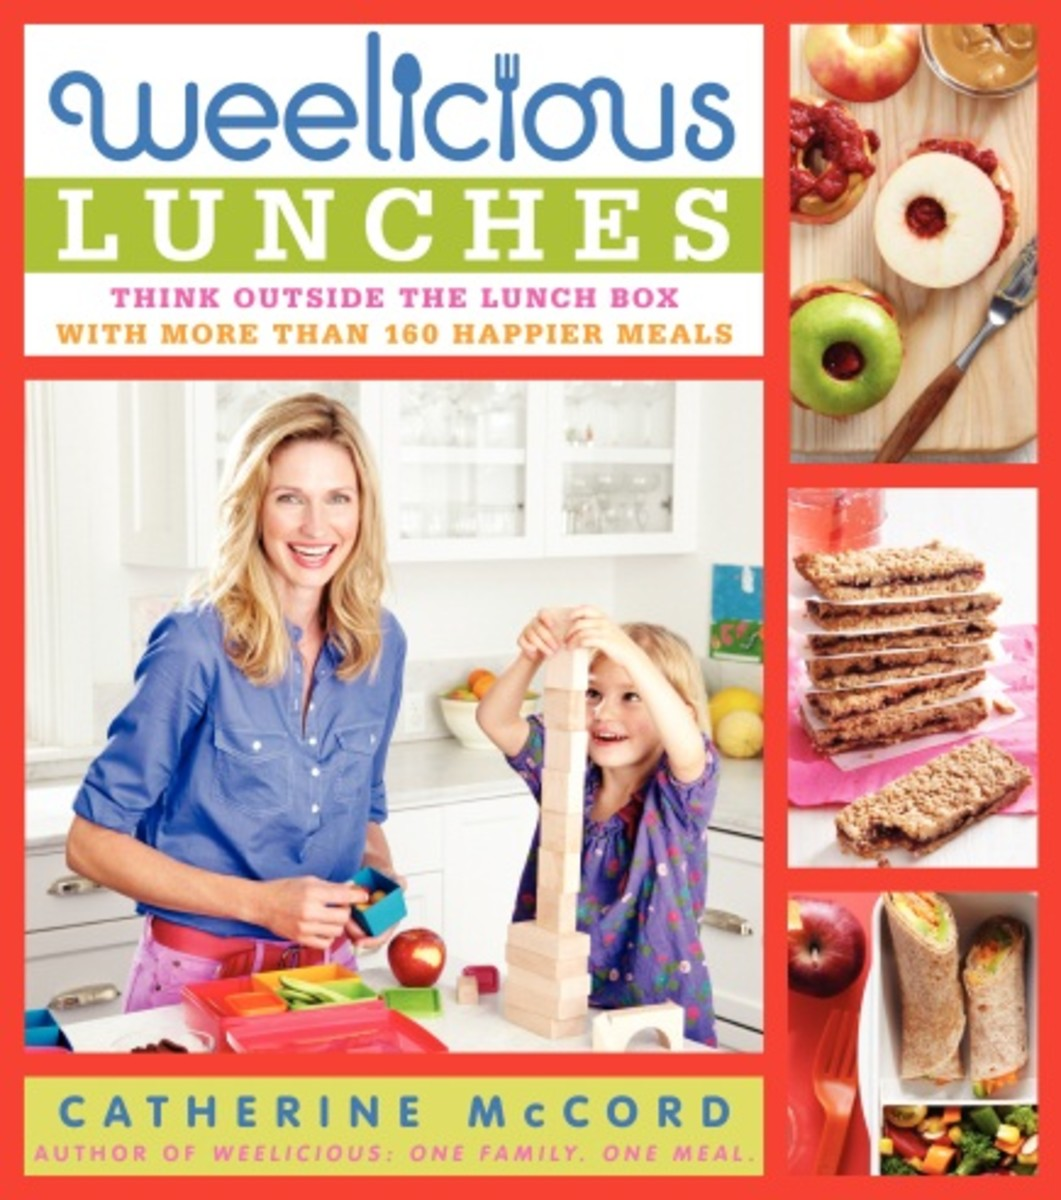 Weelicious Lunches: Think Outside the Lunch Box with More Than 160 Happier Meals, Weelicious Lunches: Think Outside the Lunch Box with More Than 160 Happier Meals  review